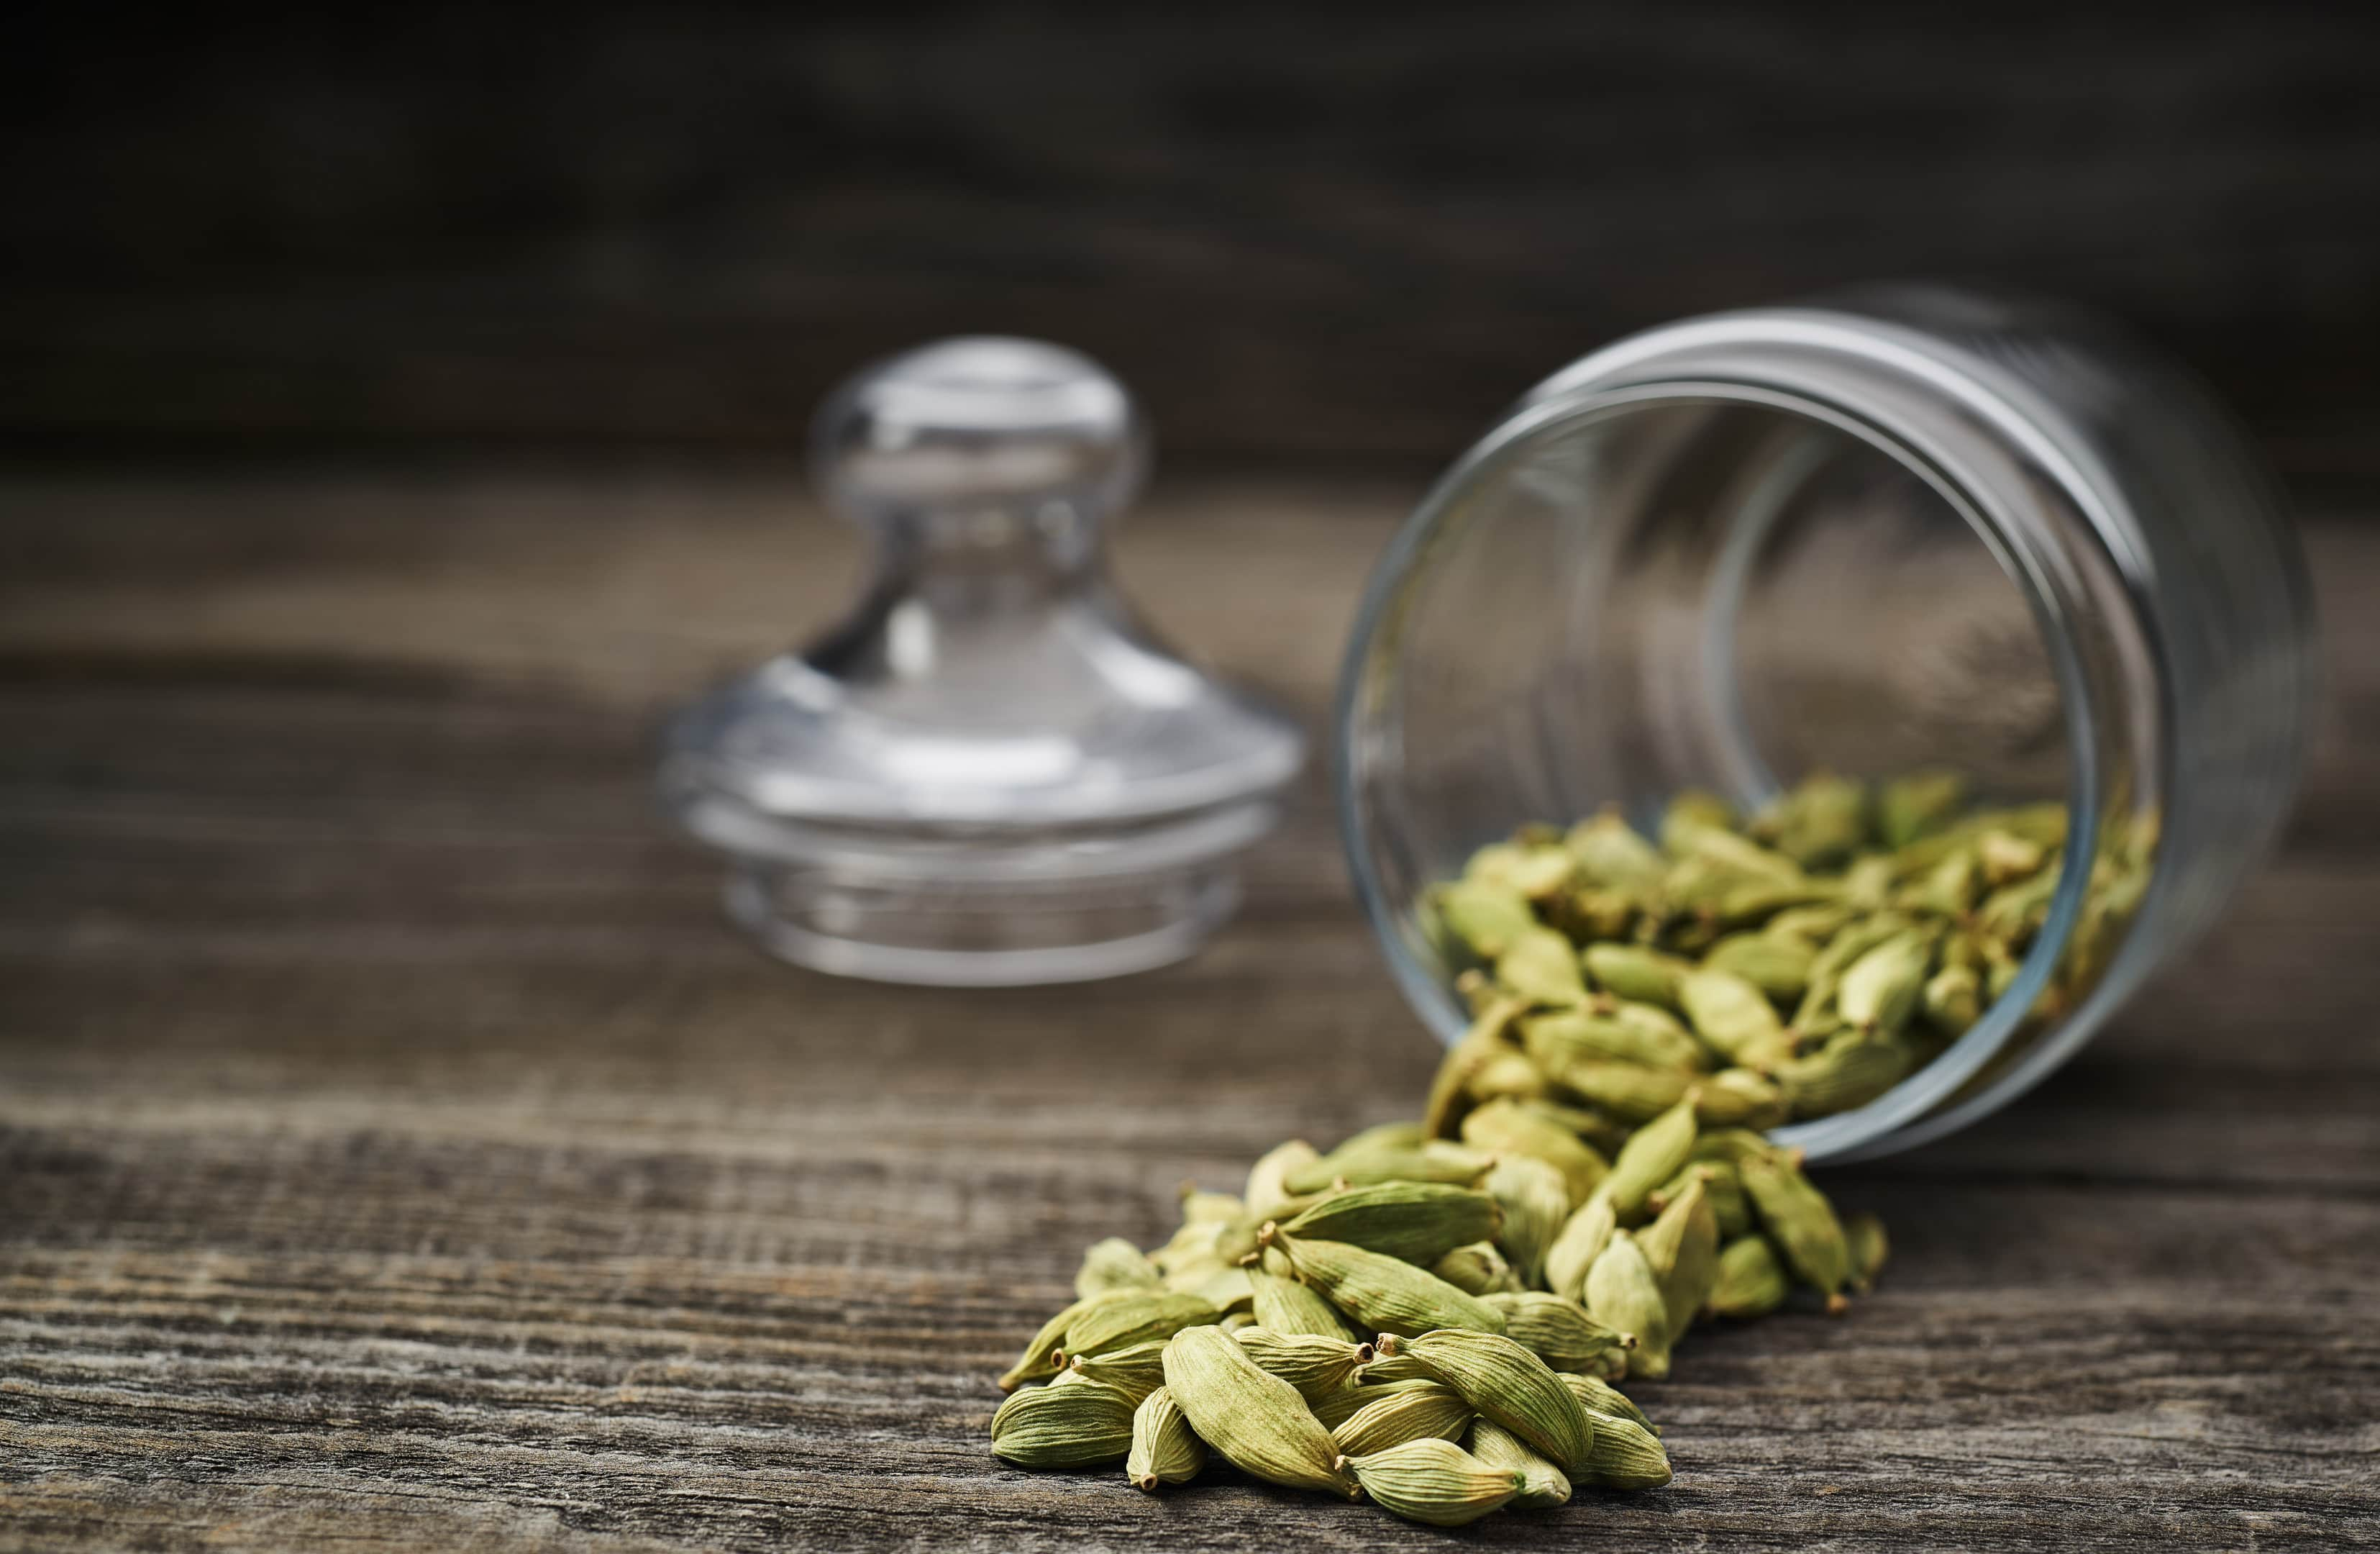 Green cardamom pods spill from glass jar on wooden table